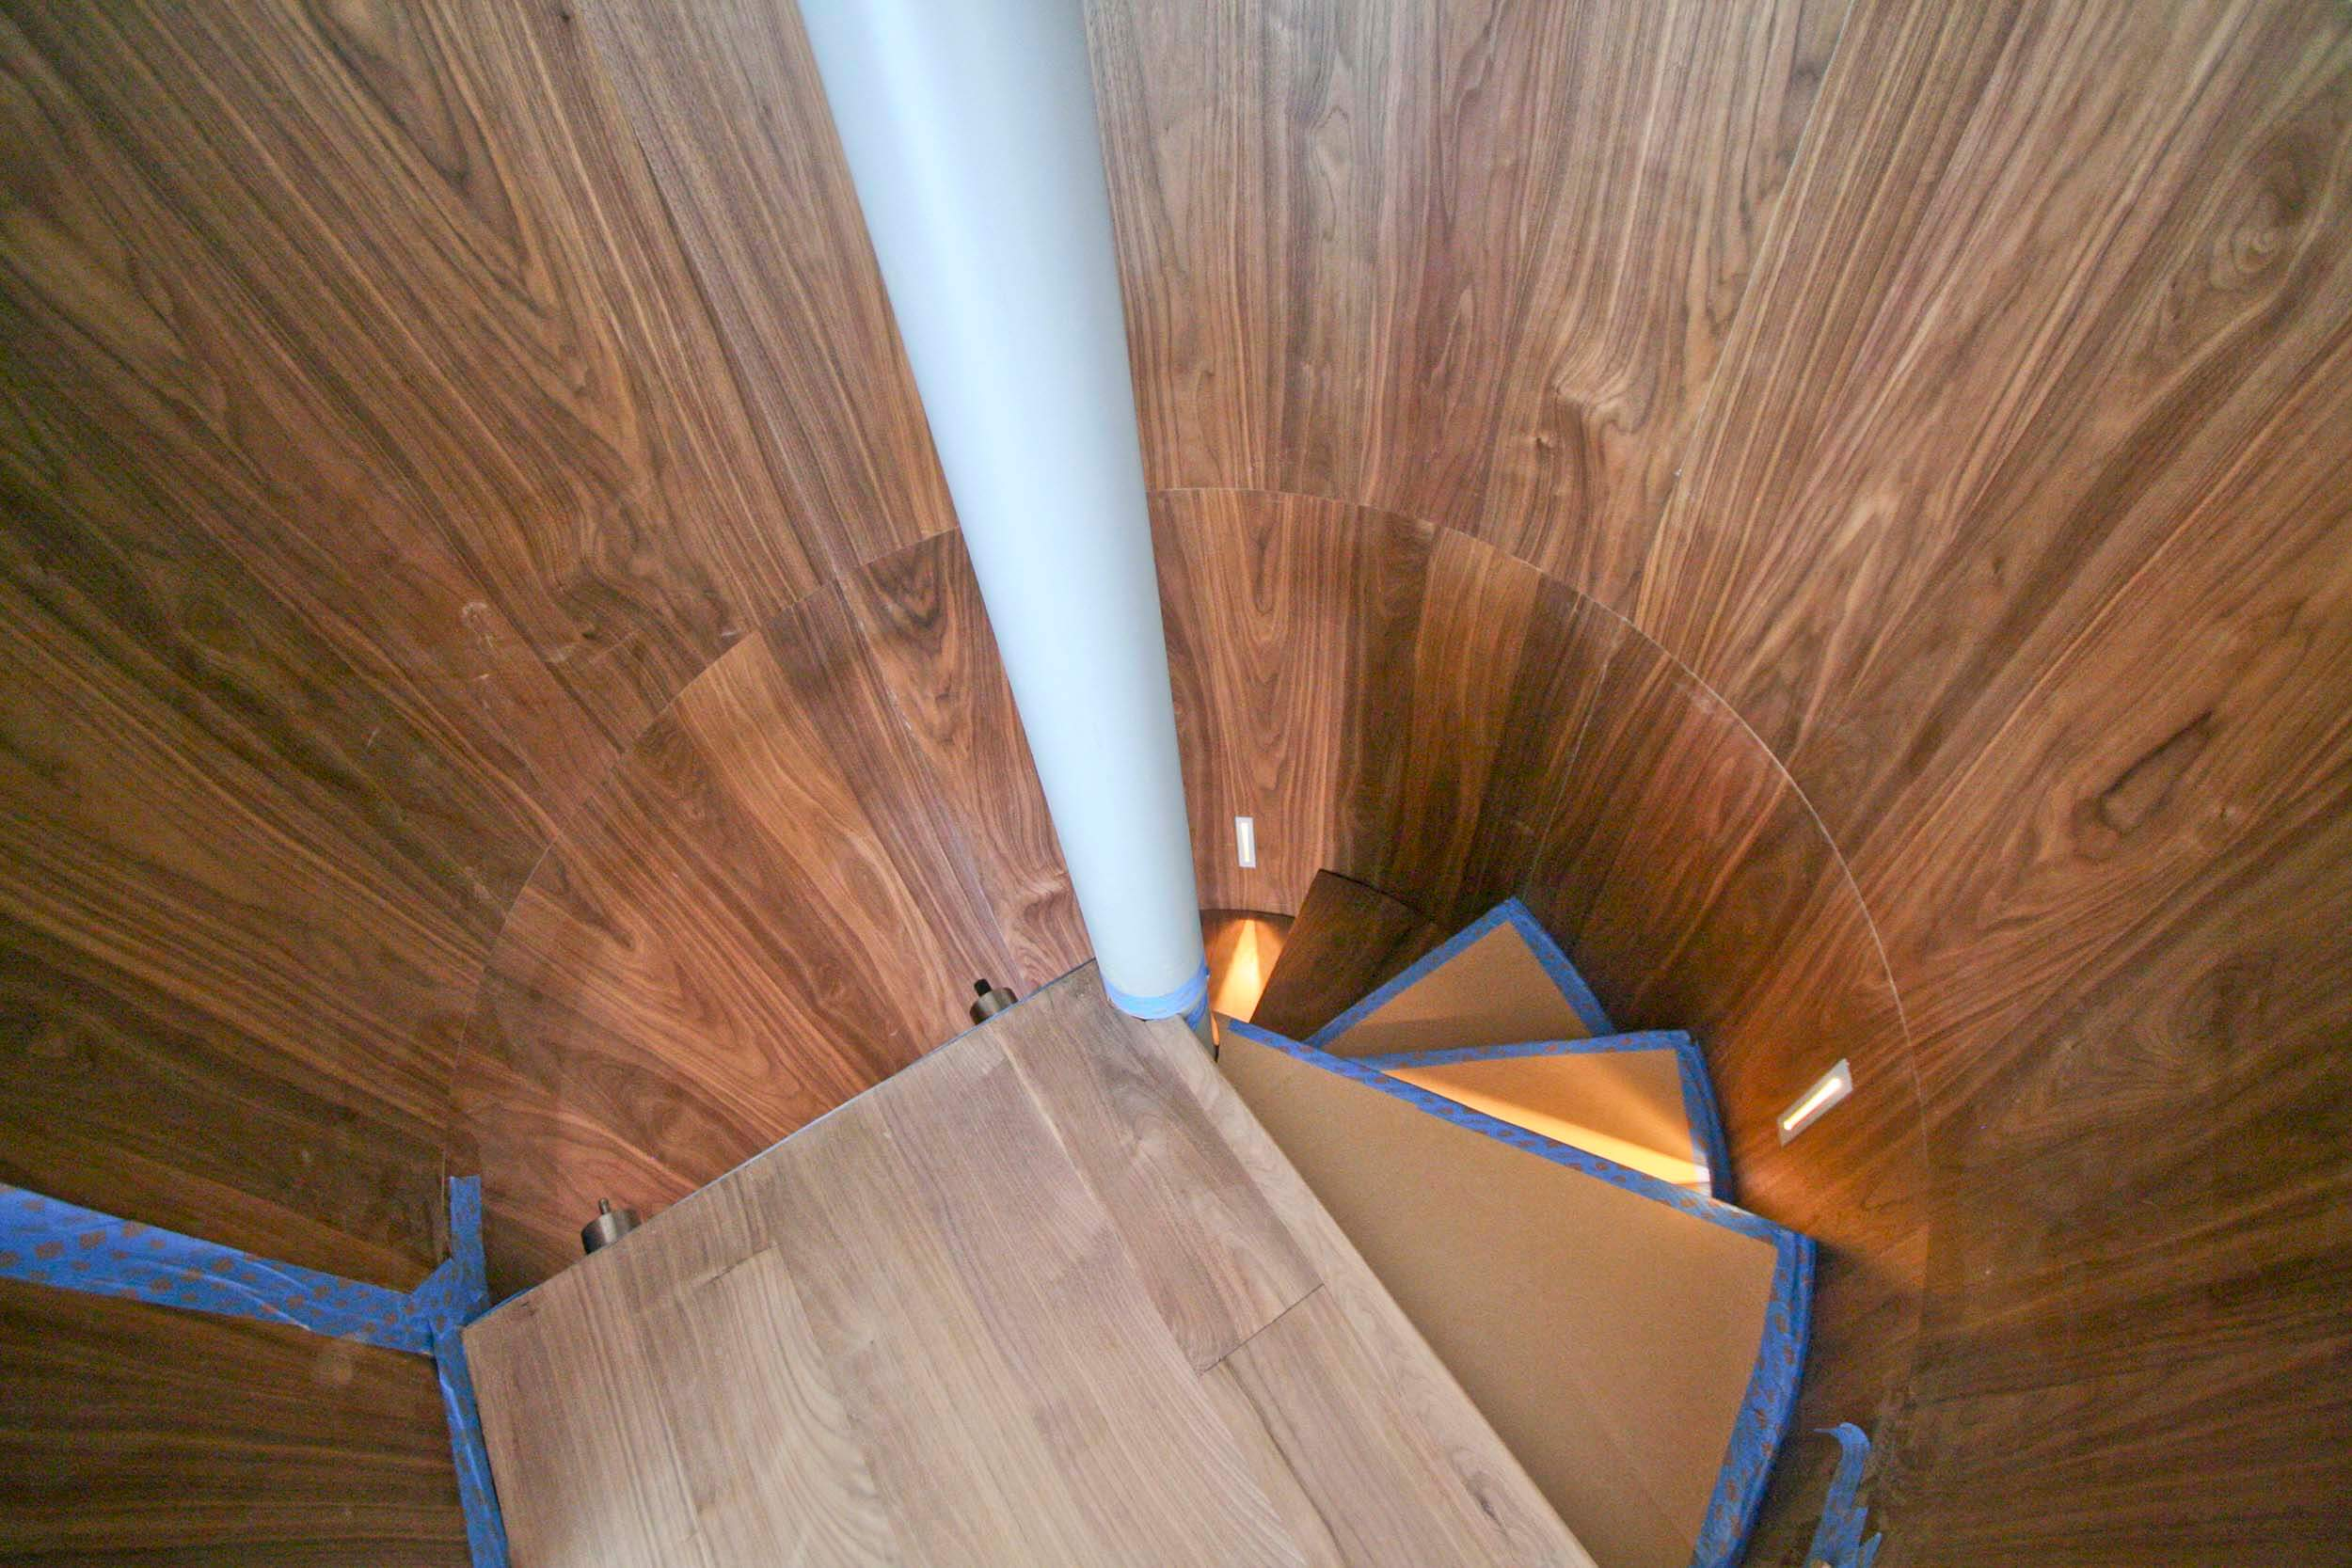 Walnut spiral stair  nearly complete -  Step lights create a nice accent